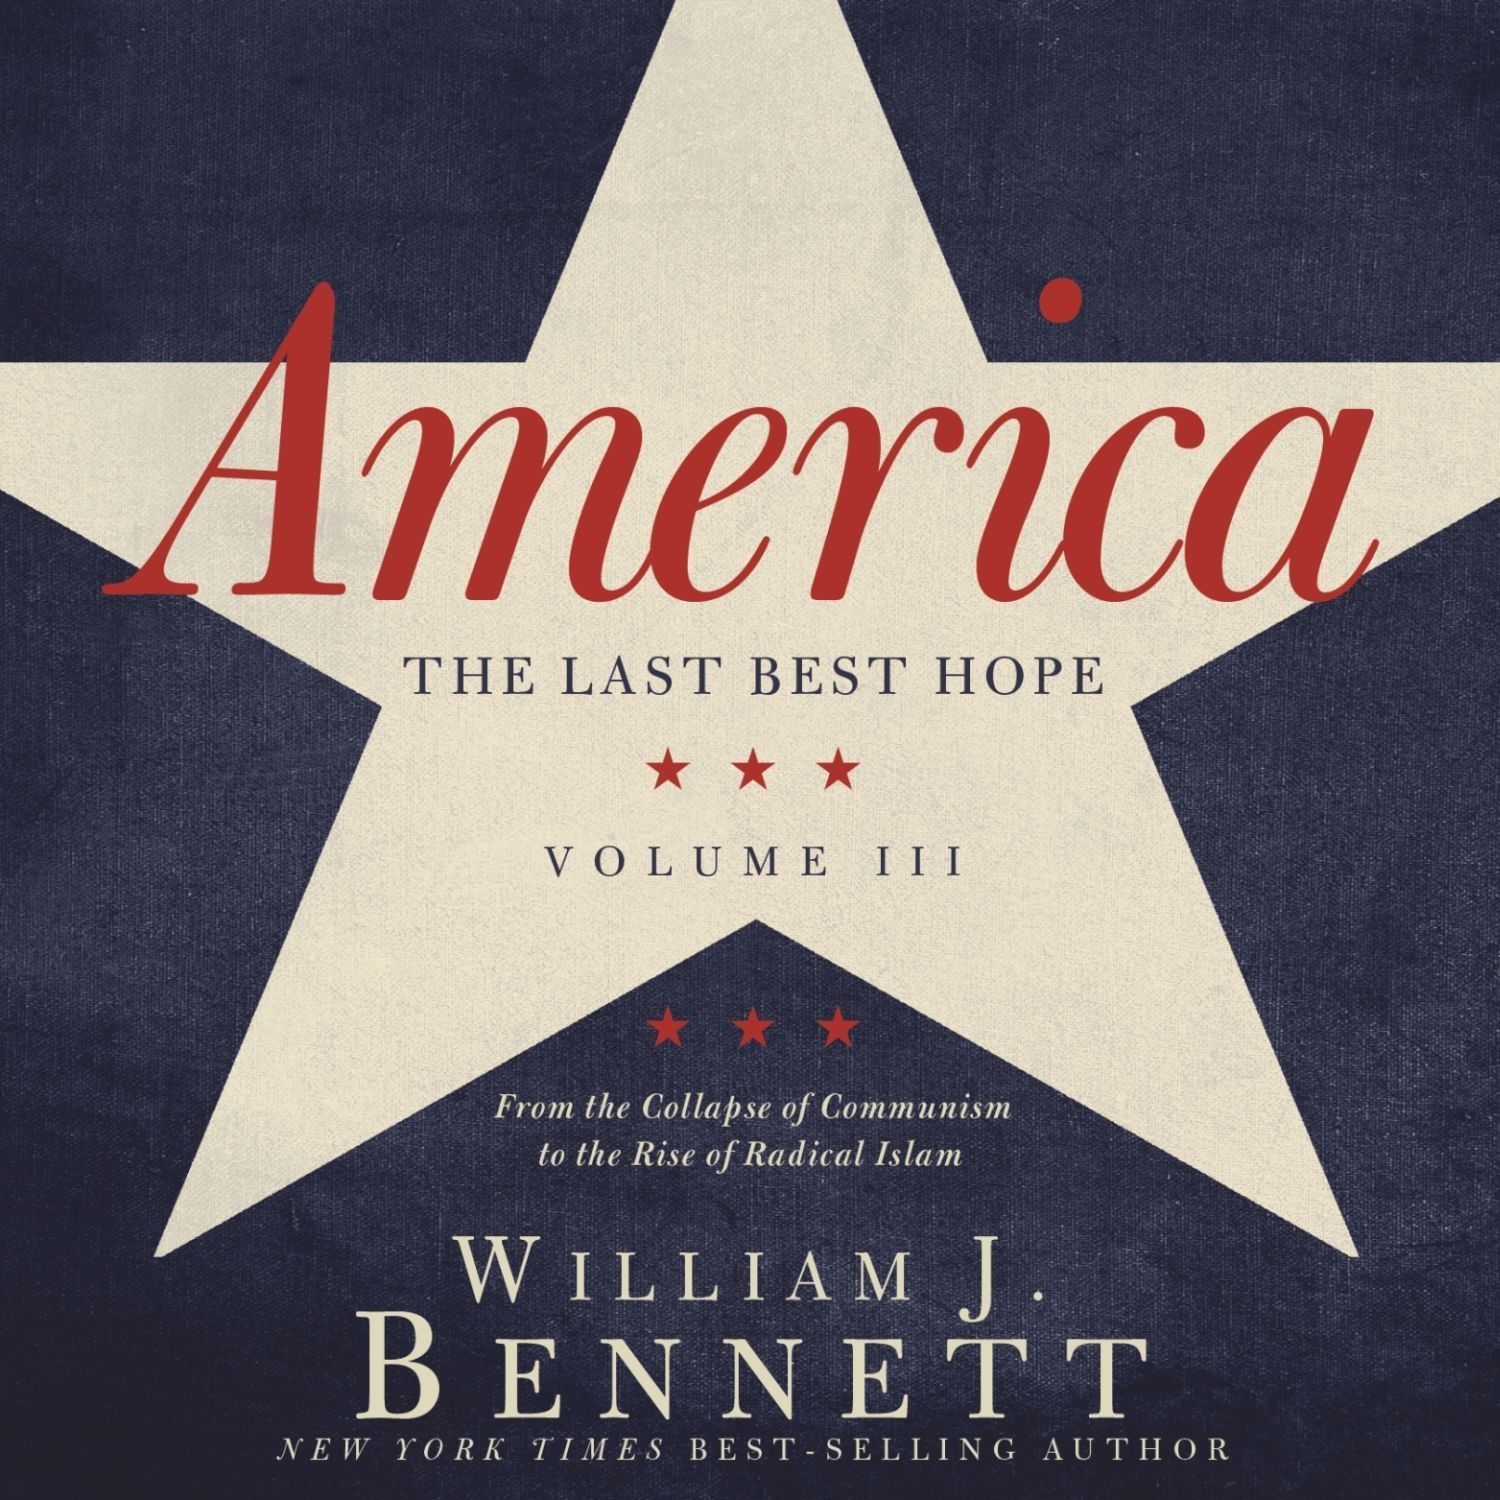 Printable America: The Last Best Hope (Volume III): From the Collapse of Communism to the Rise of Radical Islam Audiobook Cover Art